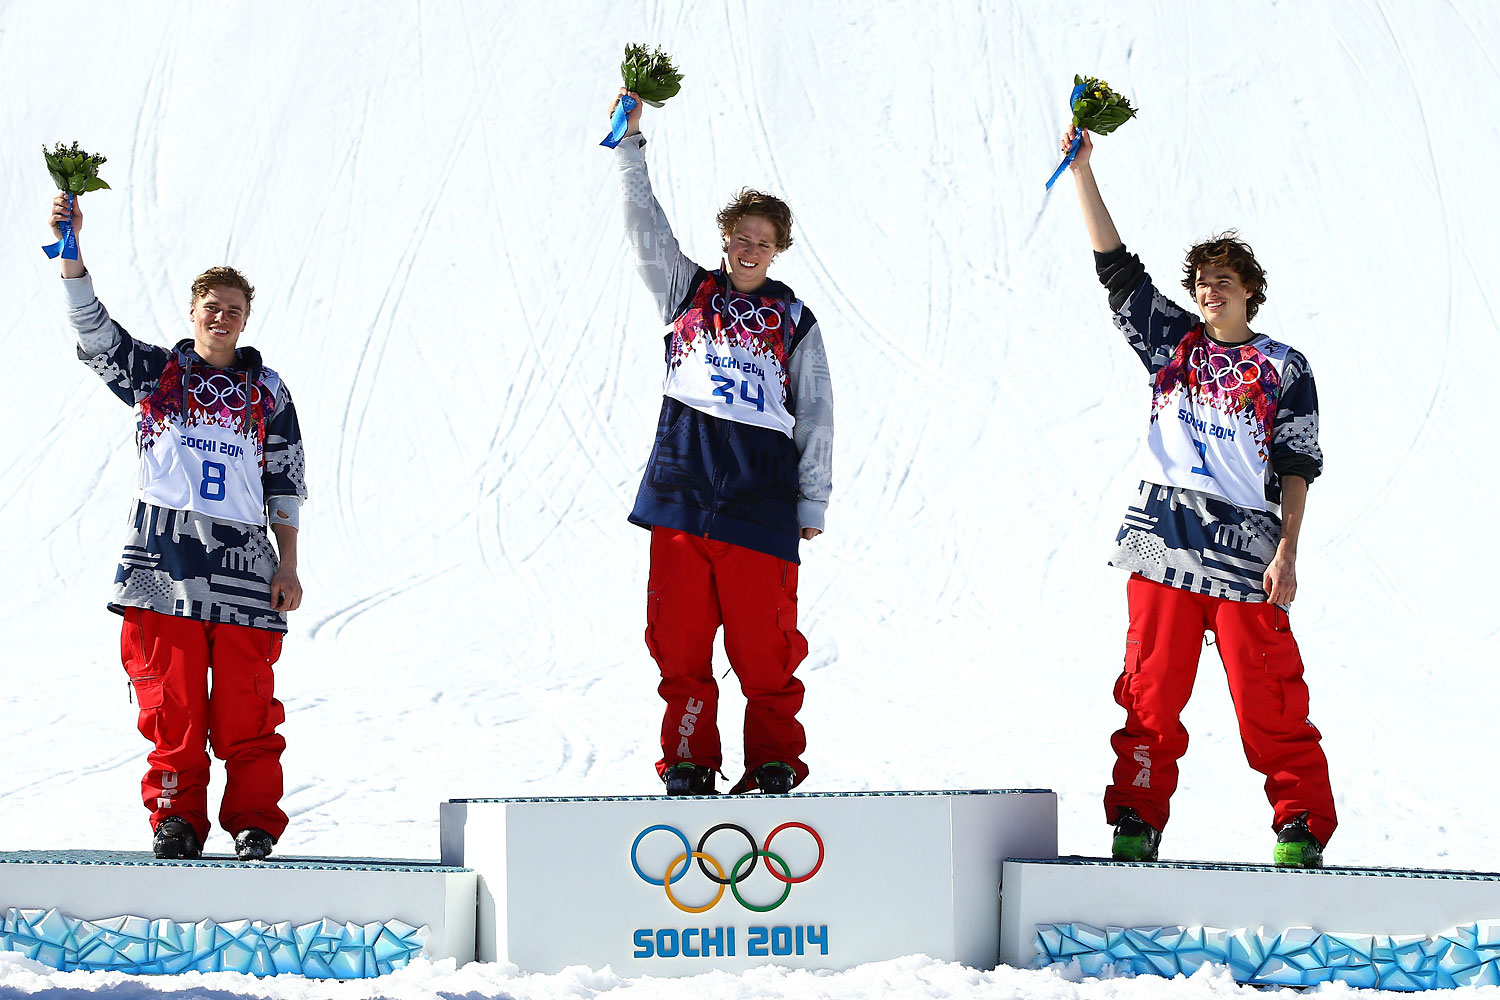 Silver medalist Gus Kenworthy of the United States, gold medalist Joss Christensen of the United States and bronze medalist Nicholas Goepper of the United States stand on the podium during the flower ceremony after the Freestyle Skiing Men's Ski Slopestyle Finals on Feb. 13, 2014 in Sochi.